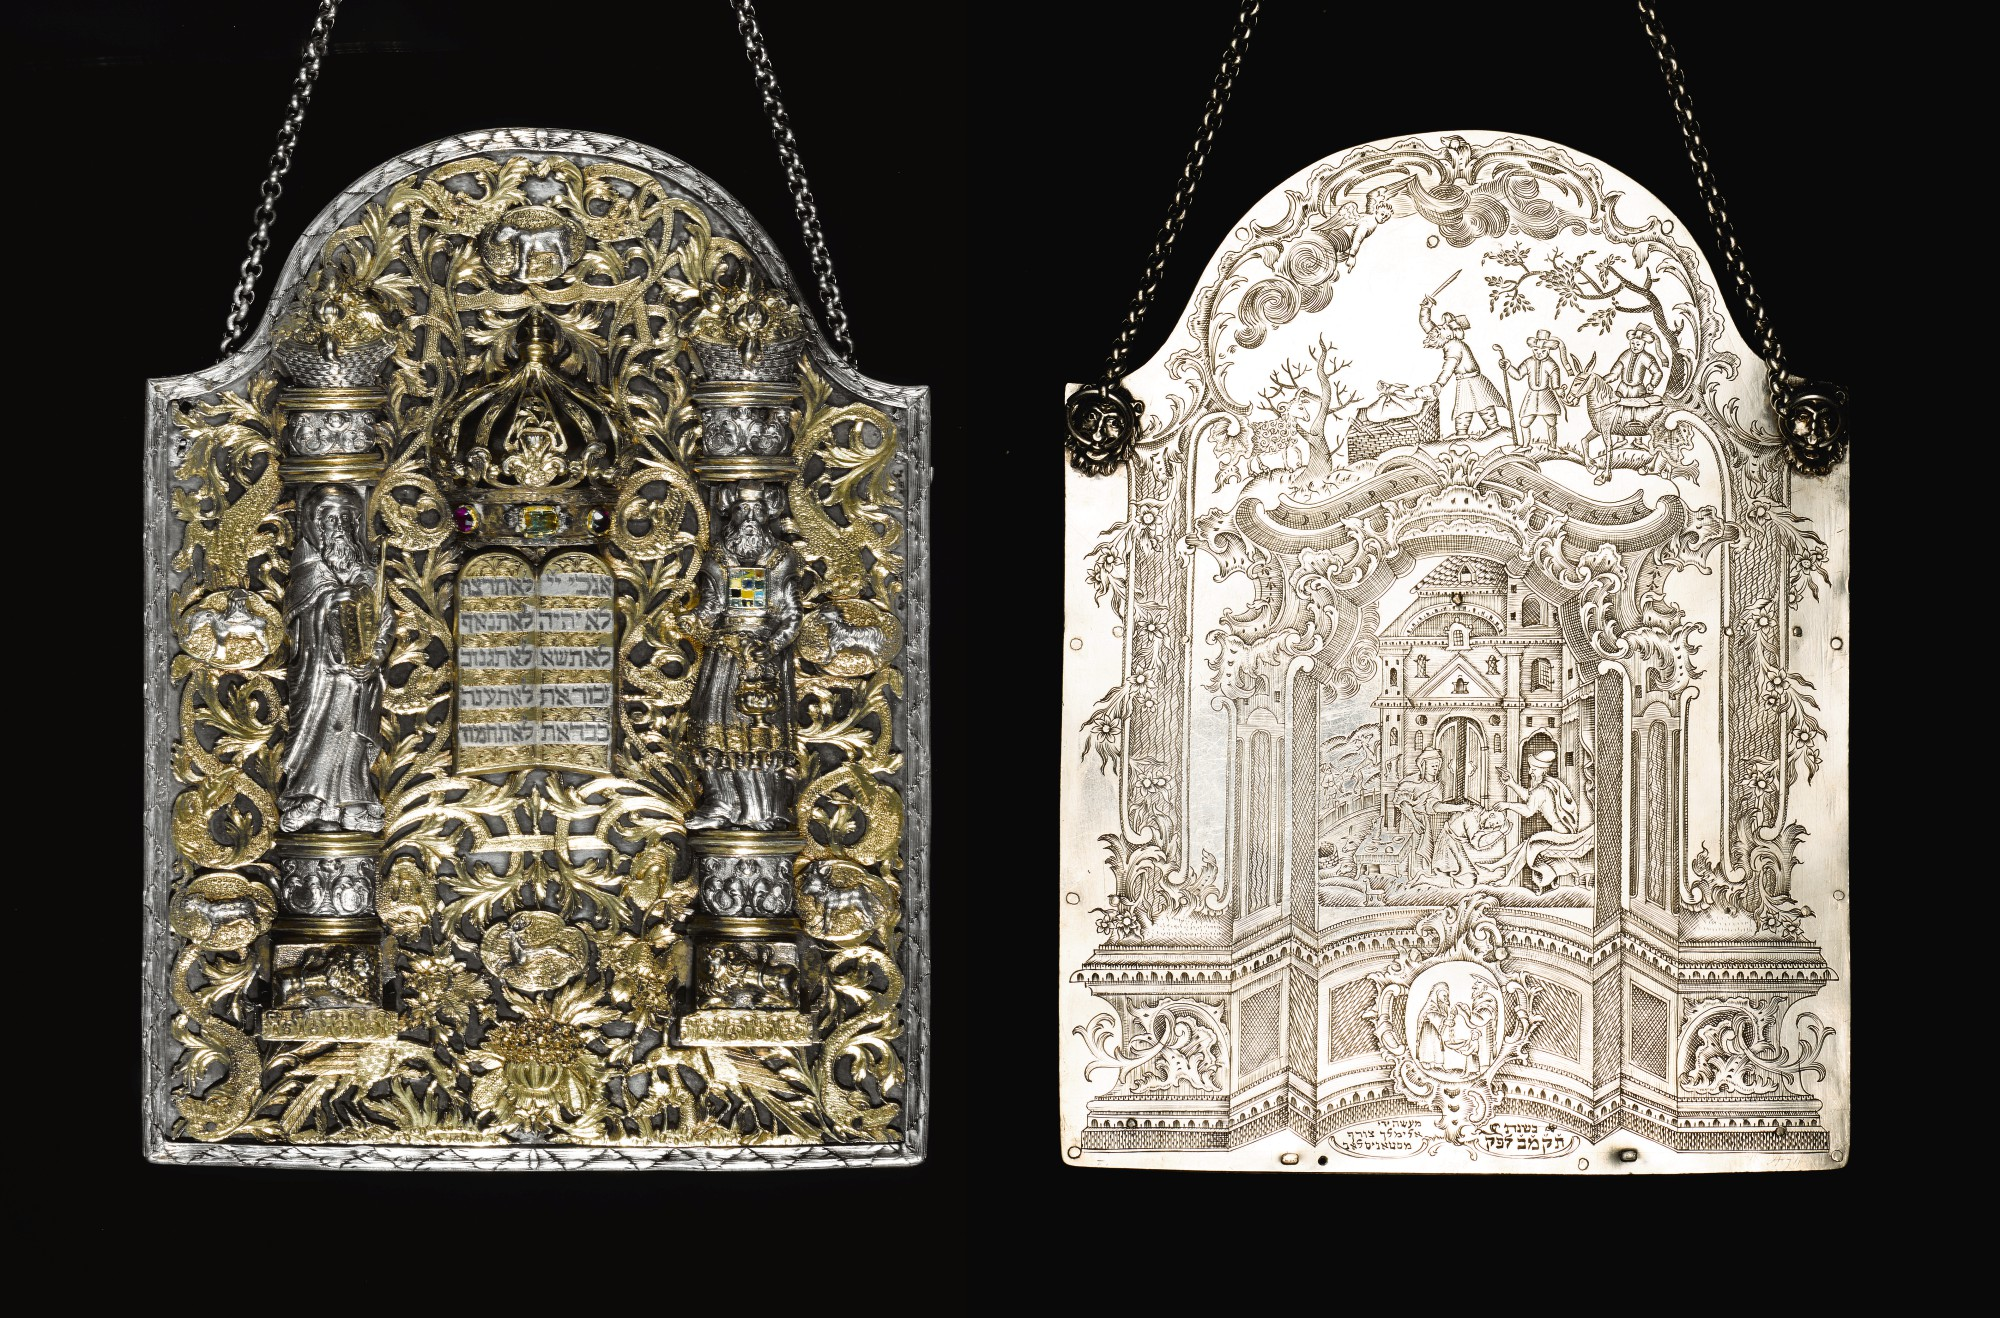 A parcel-gilt silver and enamel Torah shield, signed and dated in Hebrew by Elimelech Tzoref in 1782. Sotheby's.